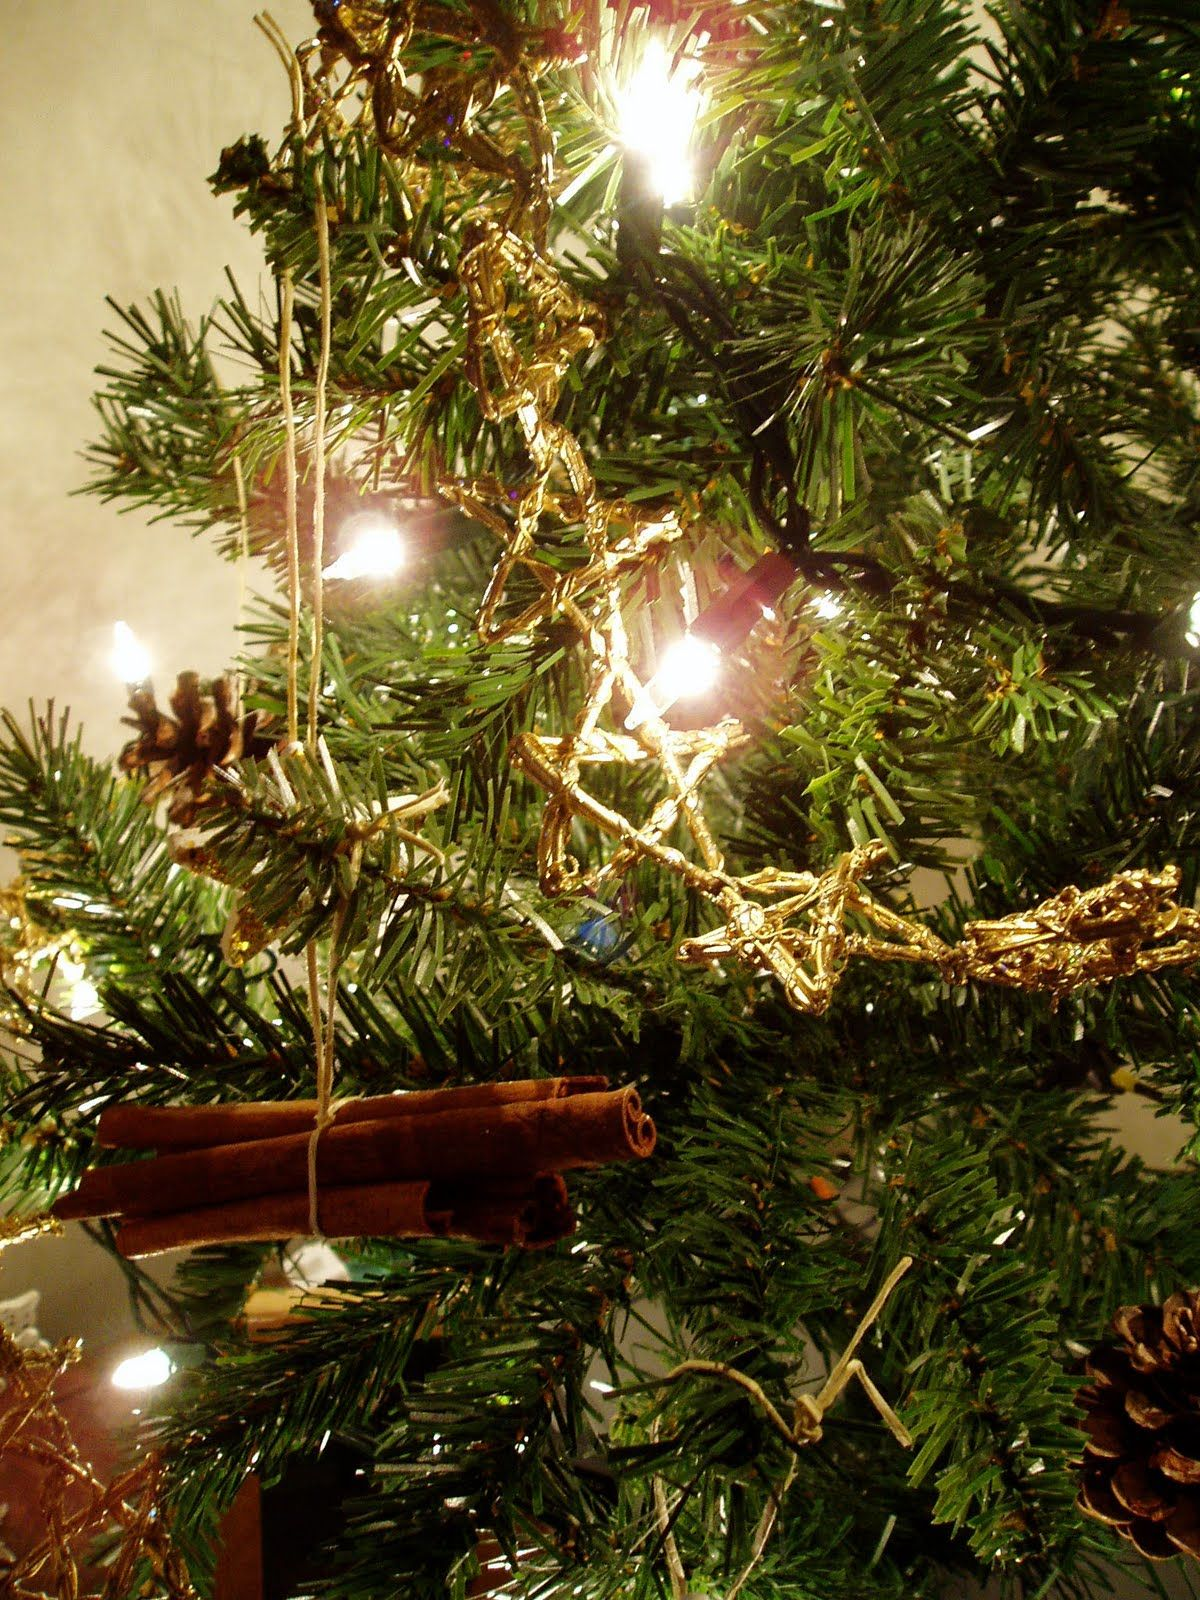 pagan yule trees | English, Pagan and in Canada!: Tis the ...